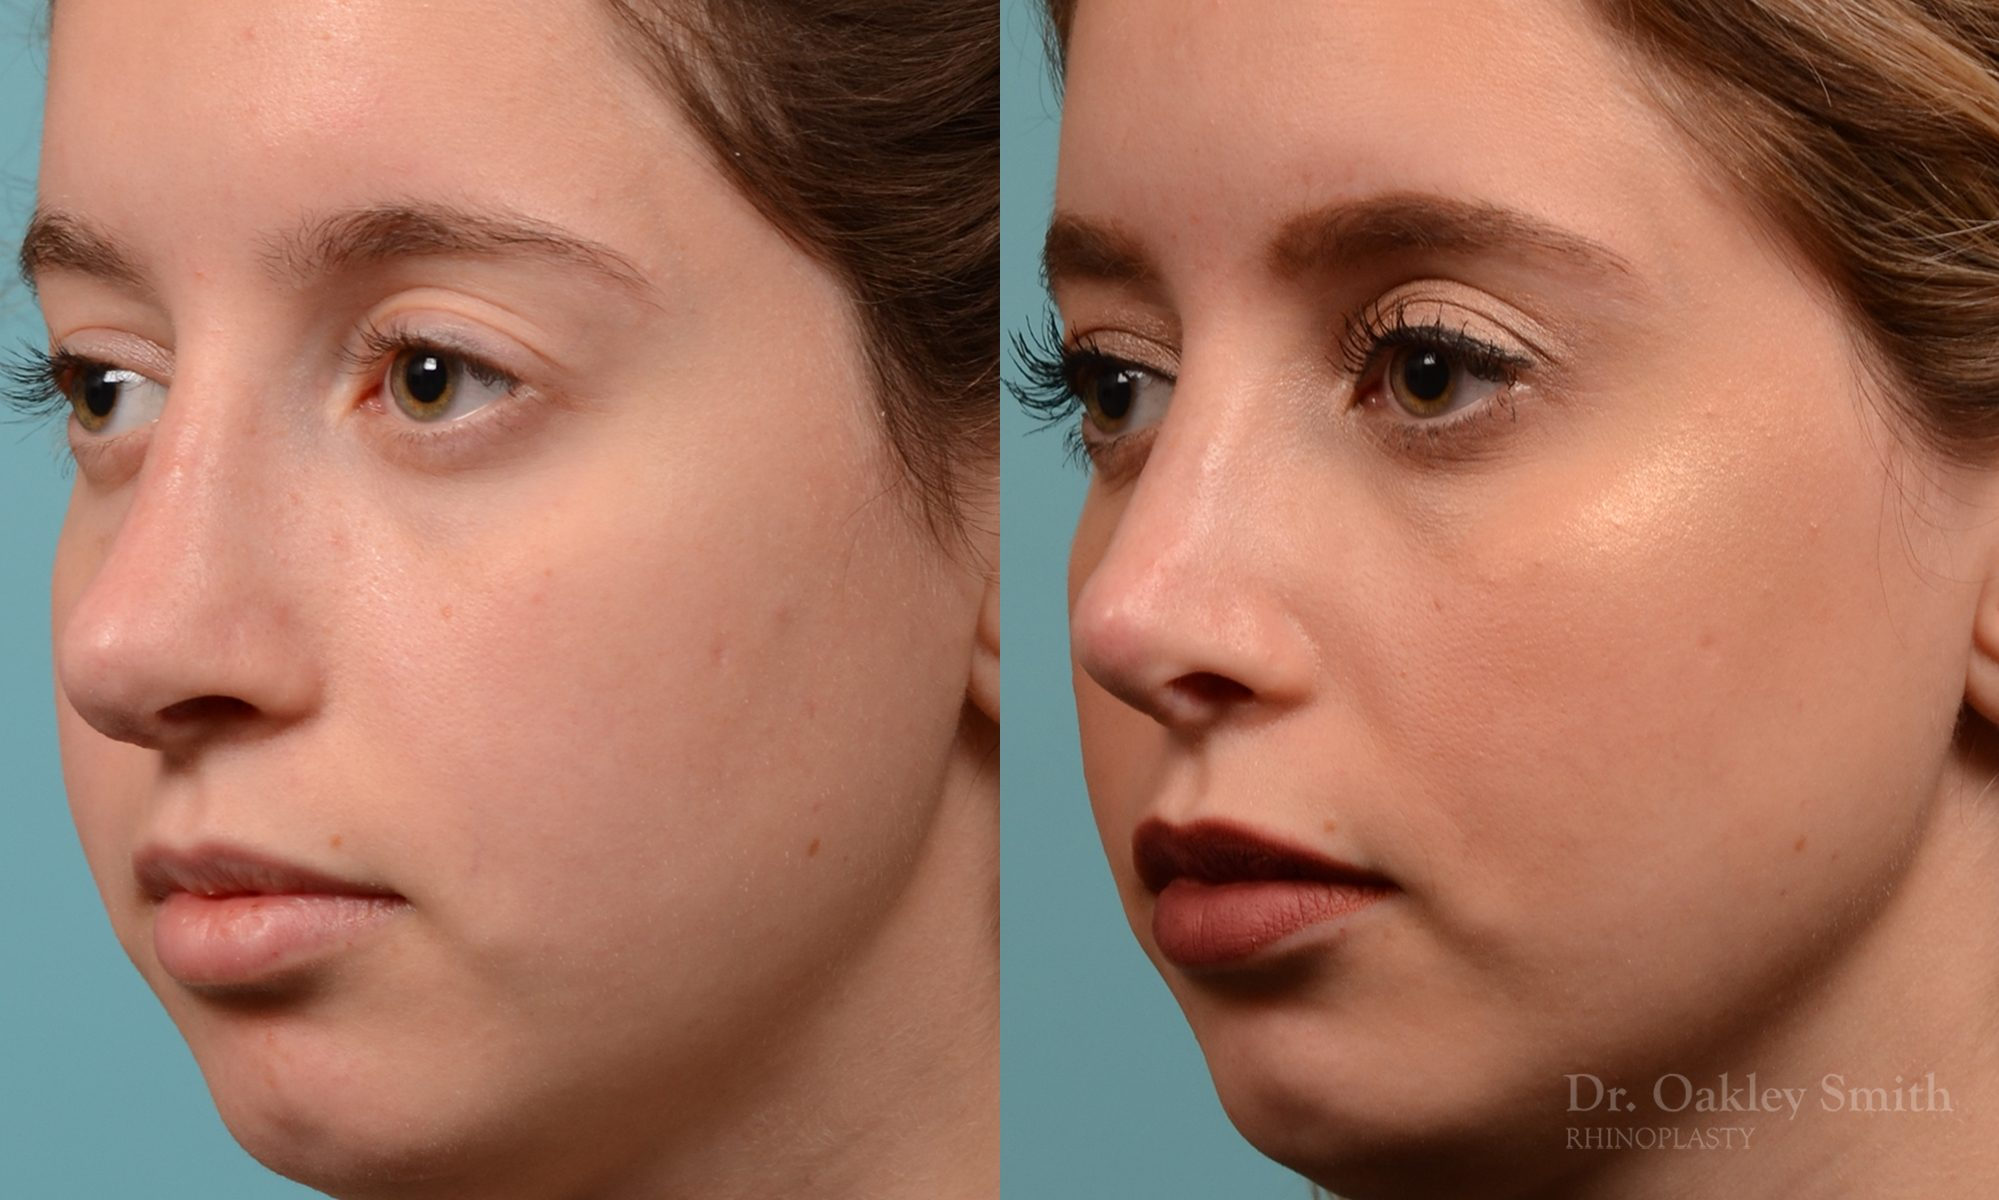 Septoplasty rhinoplasty nose surgery